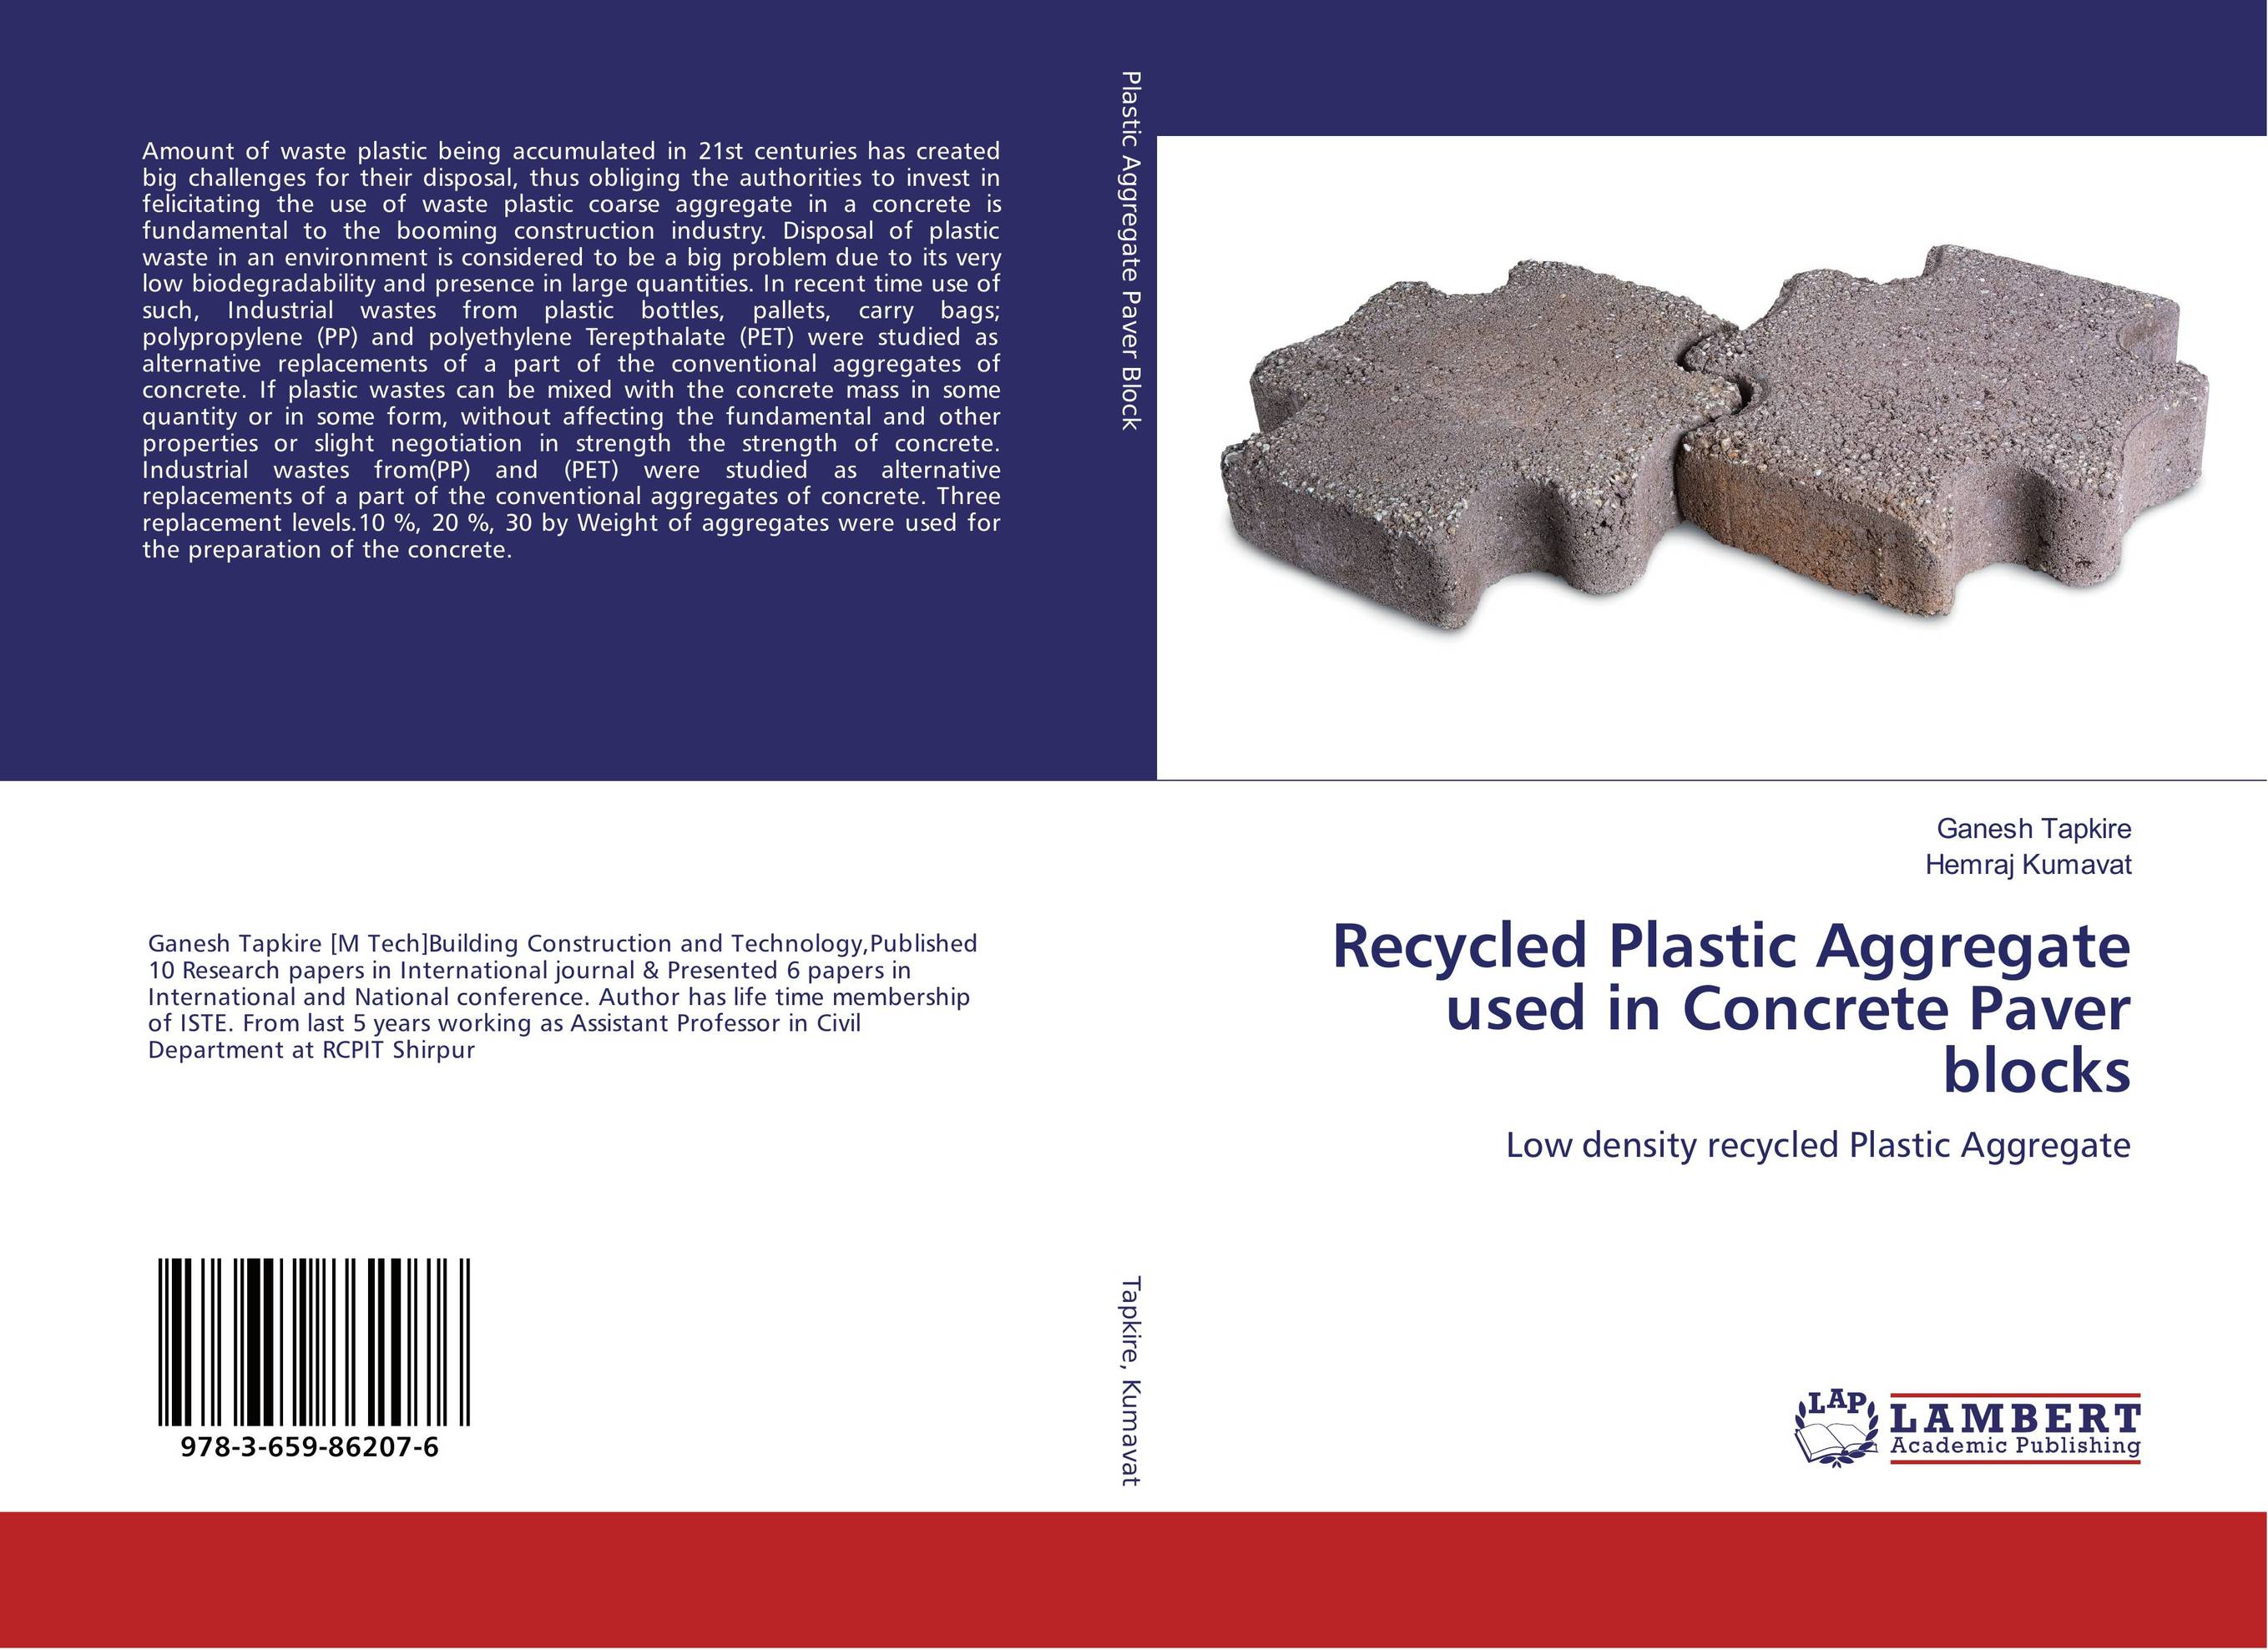 Recycled Plastic Aggregate used in Concrete Paver blocks industrial wastes in concrete alternative to cement